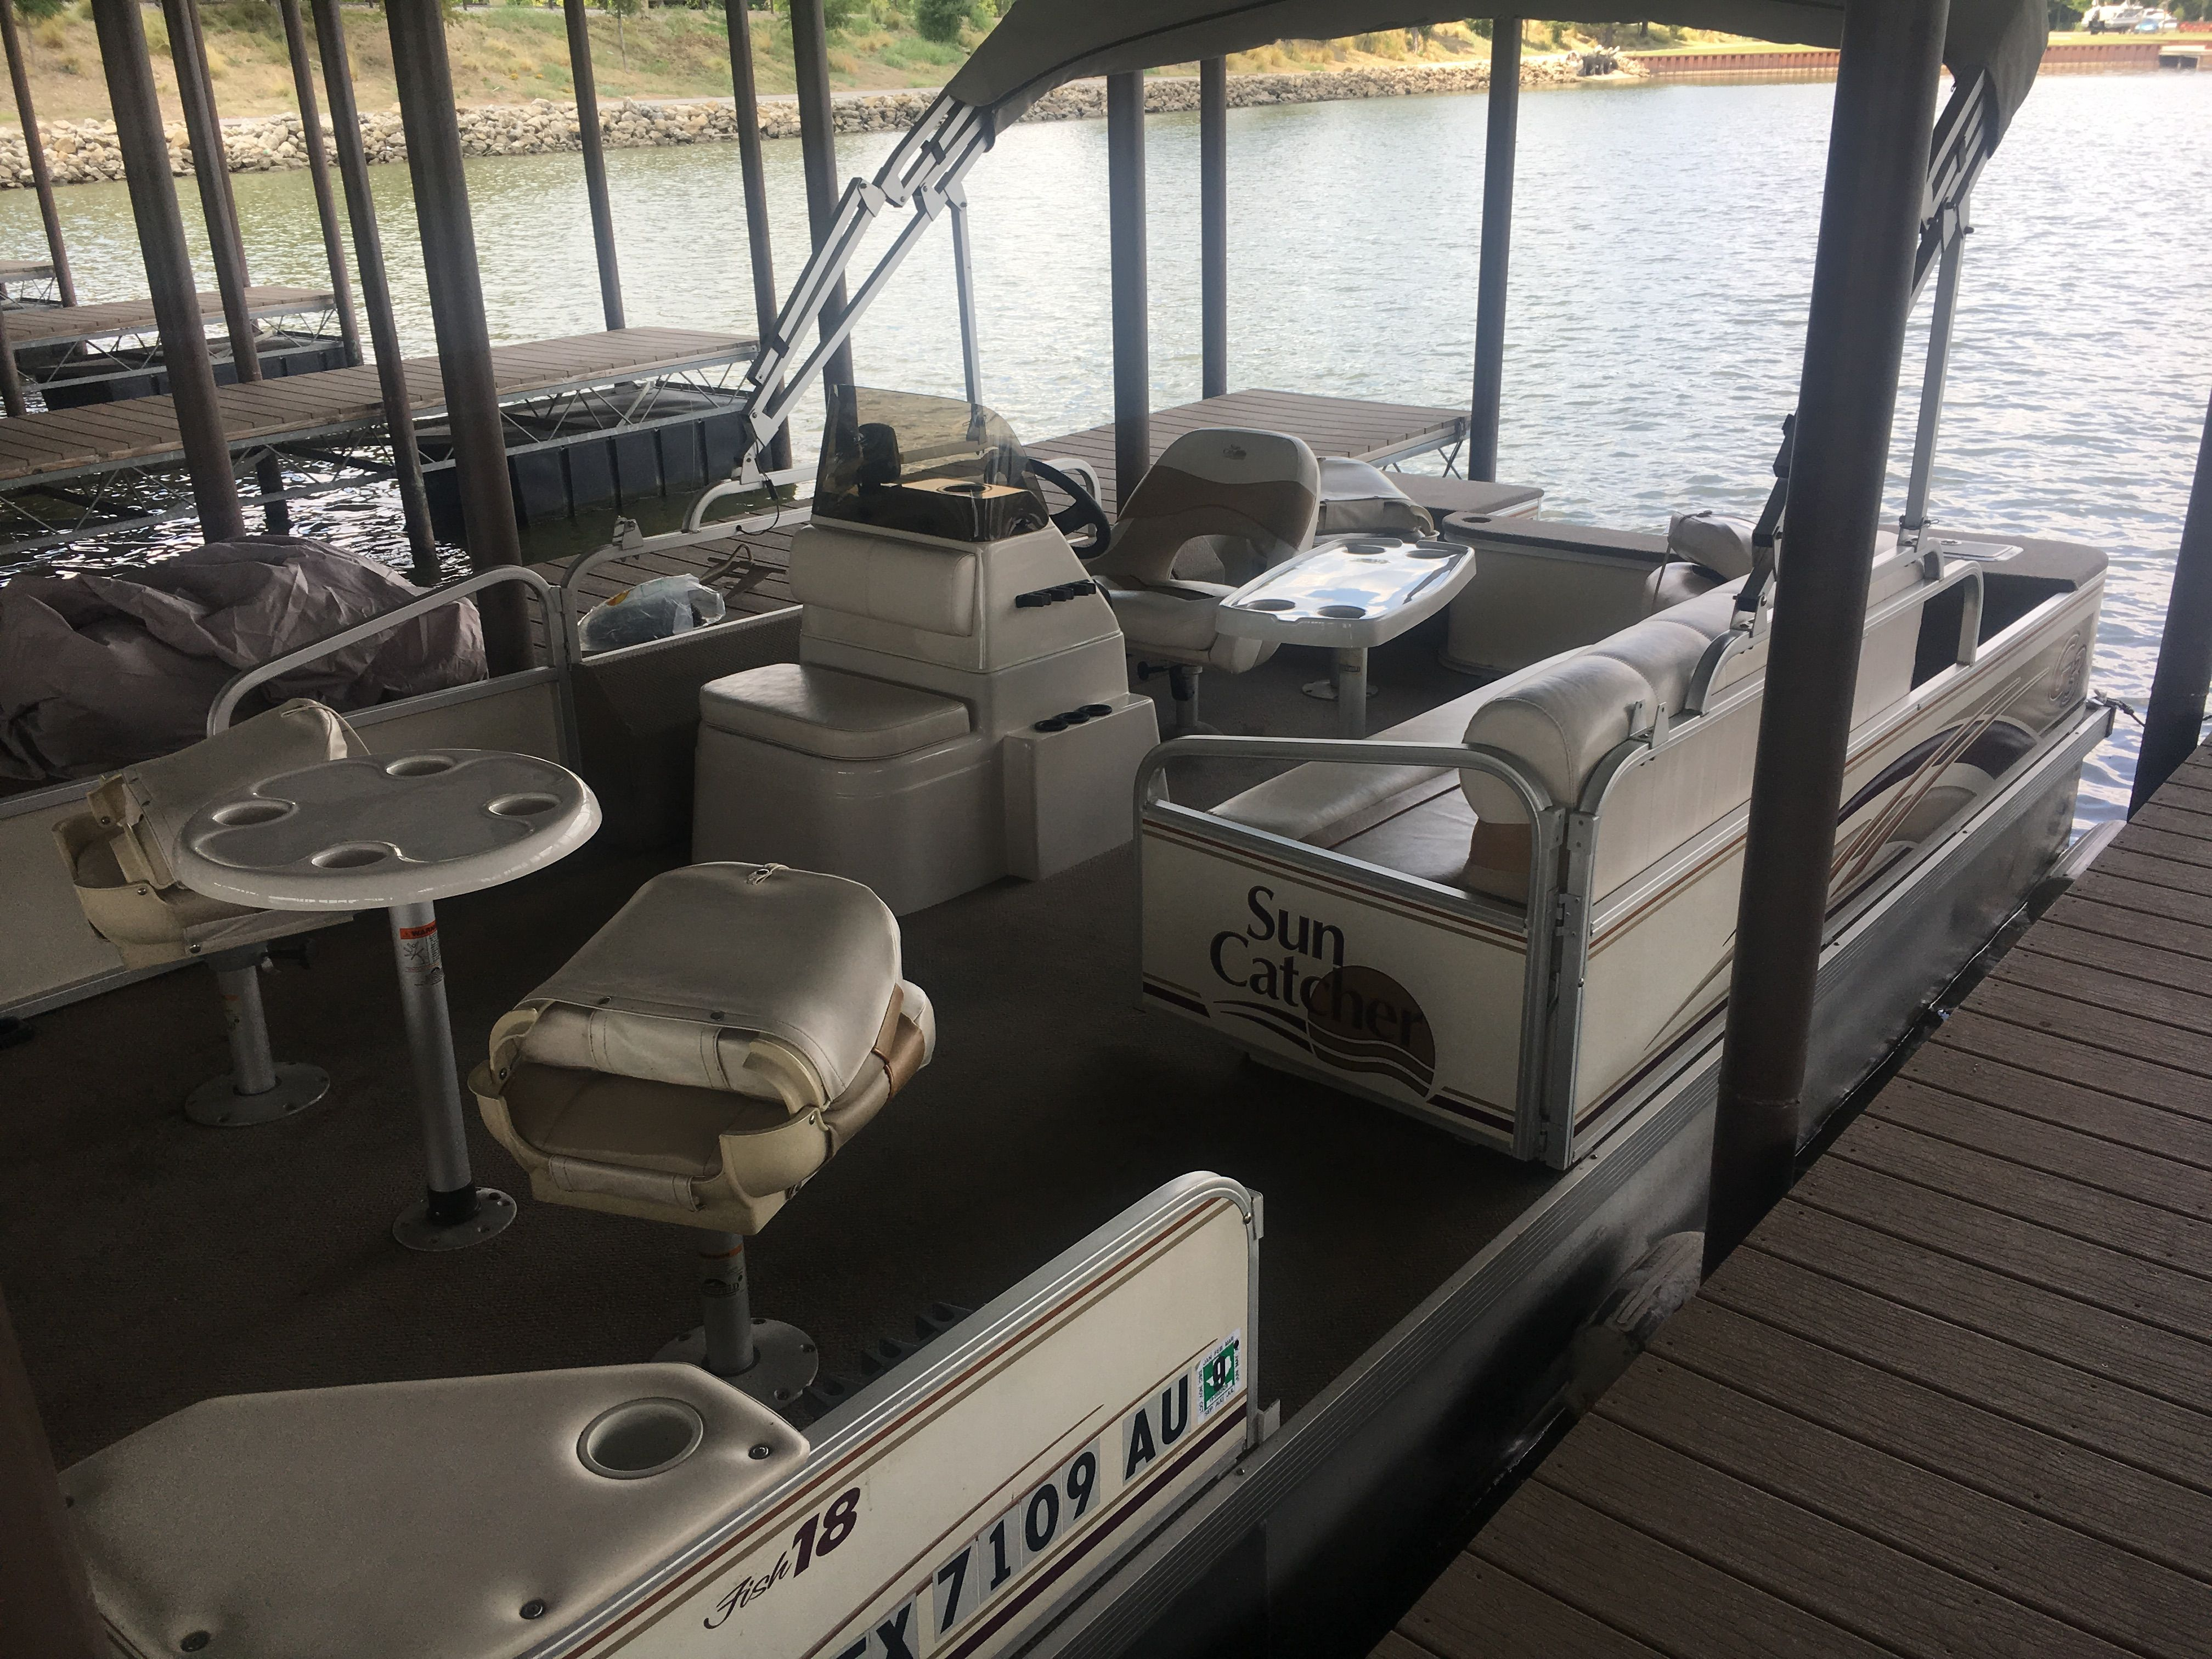 Dickeys barbecue barges at beacon hill on cedar creek